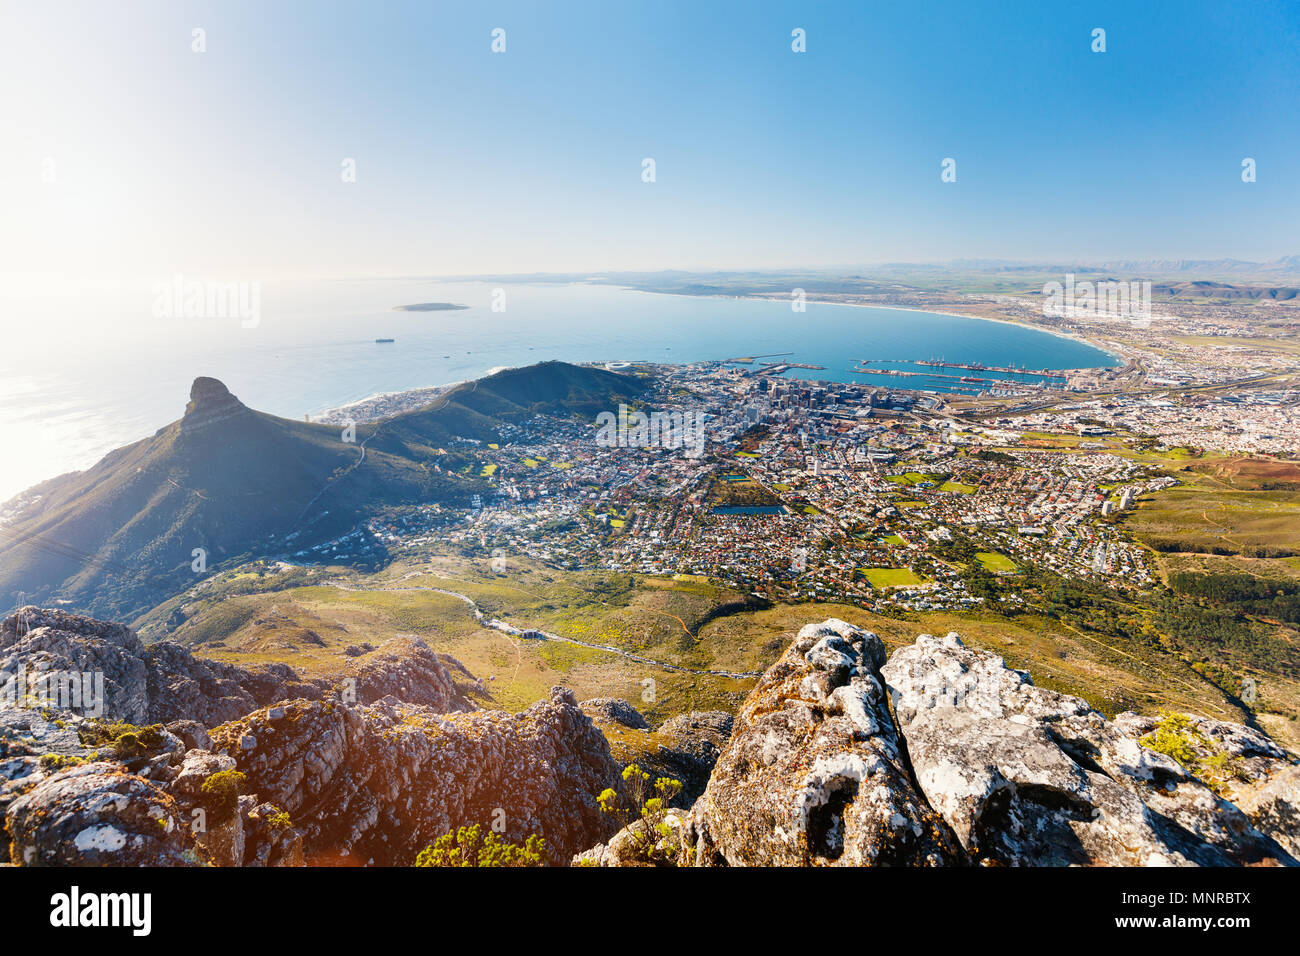 Breathtaking views of Cape Town from top of Table mountain - Stock Image